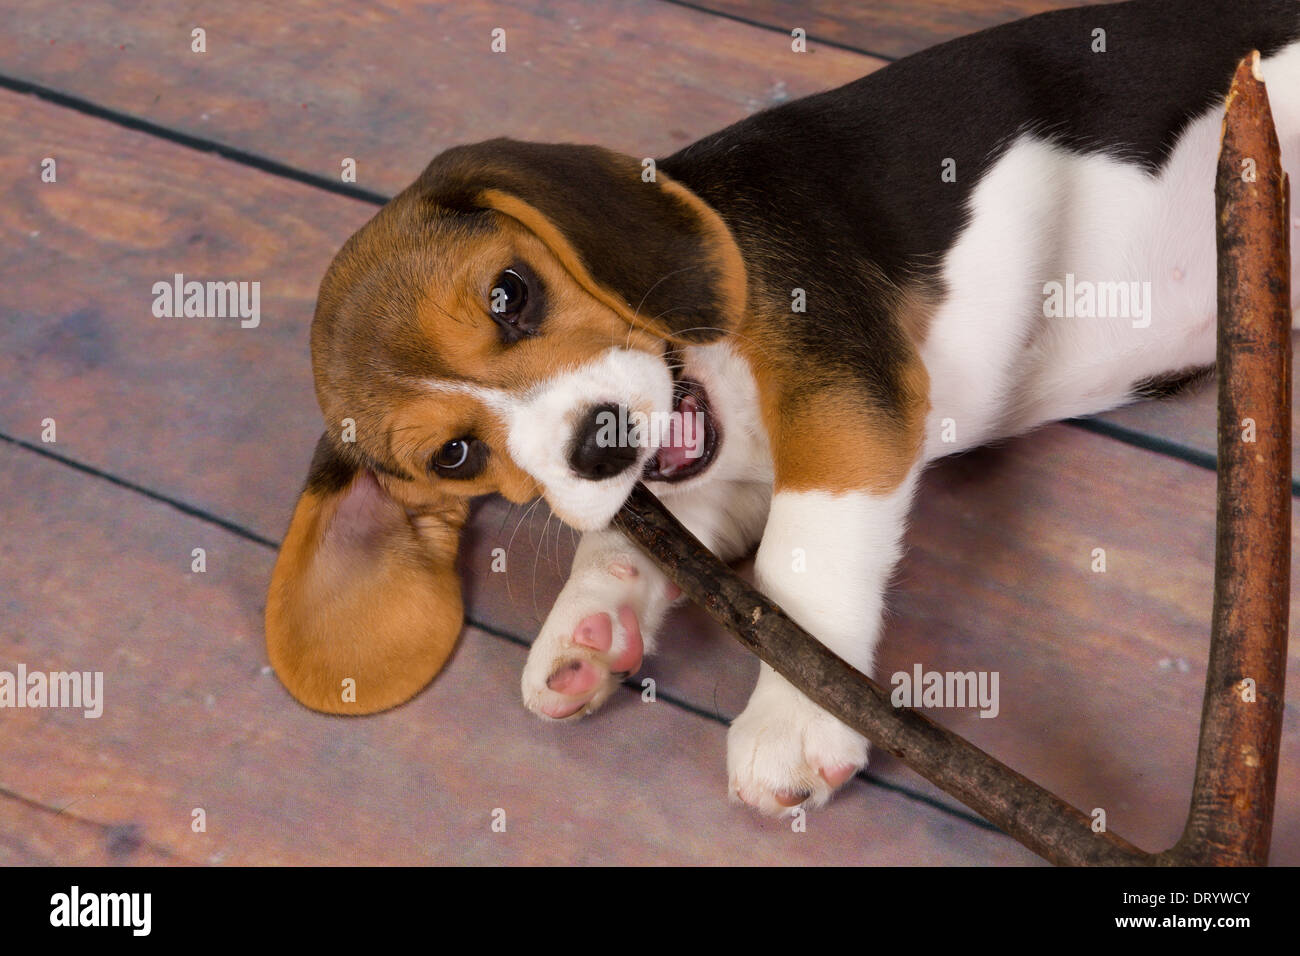 f0d723141d96 Seven weeks old cute little beagle puppy chewing on a stick - Stock Image